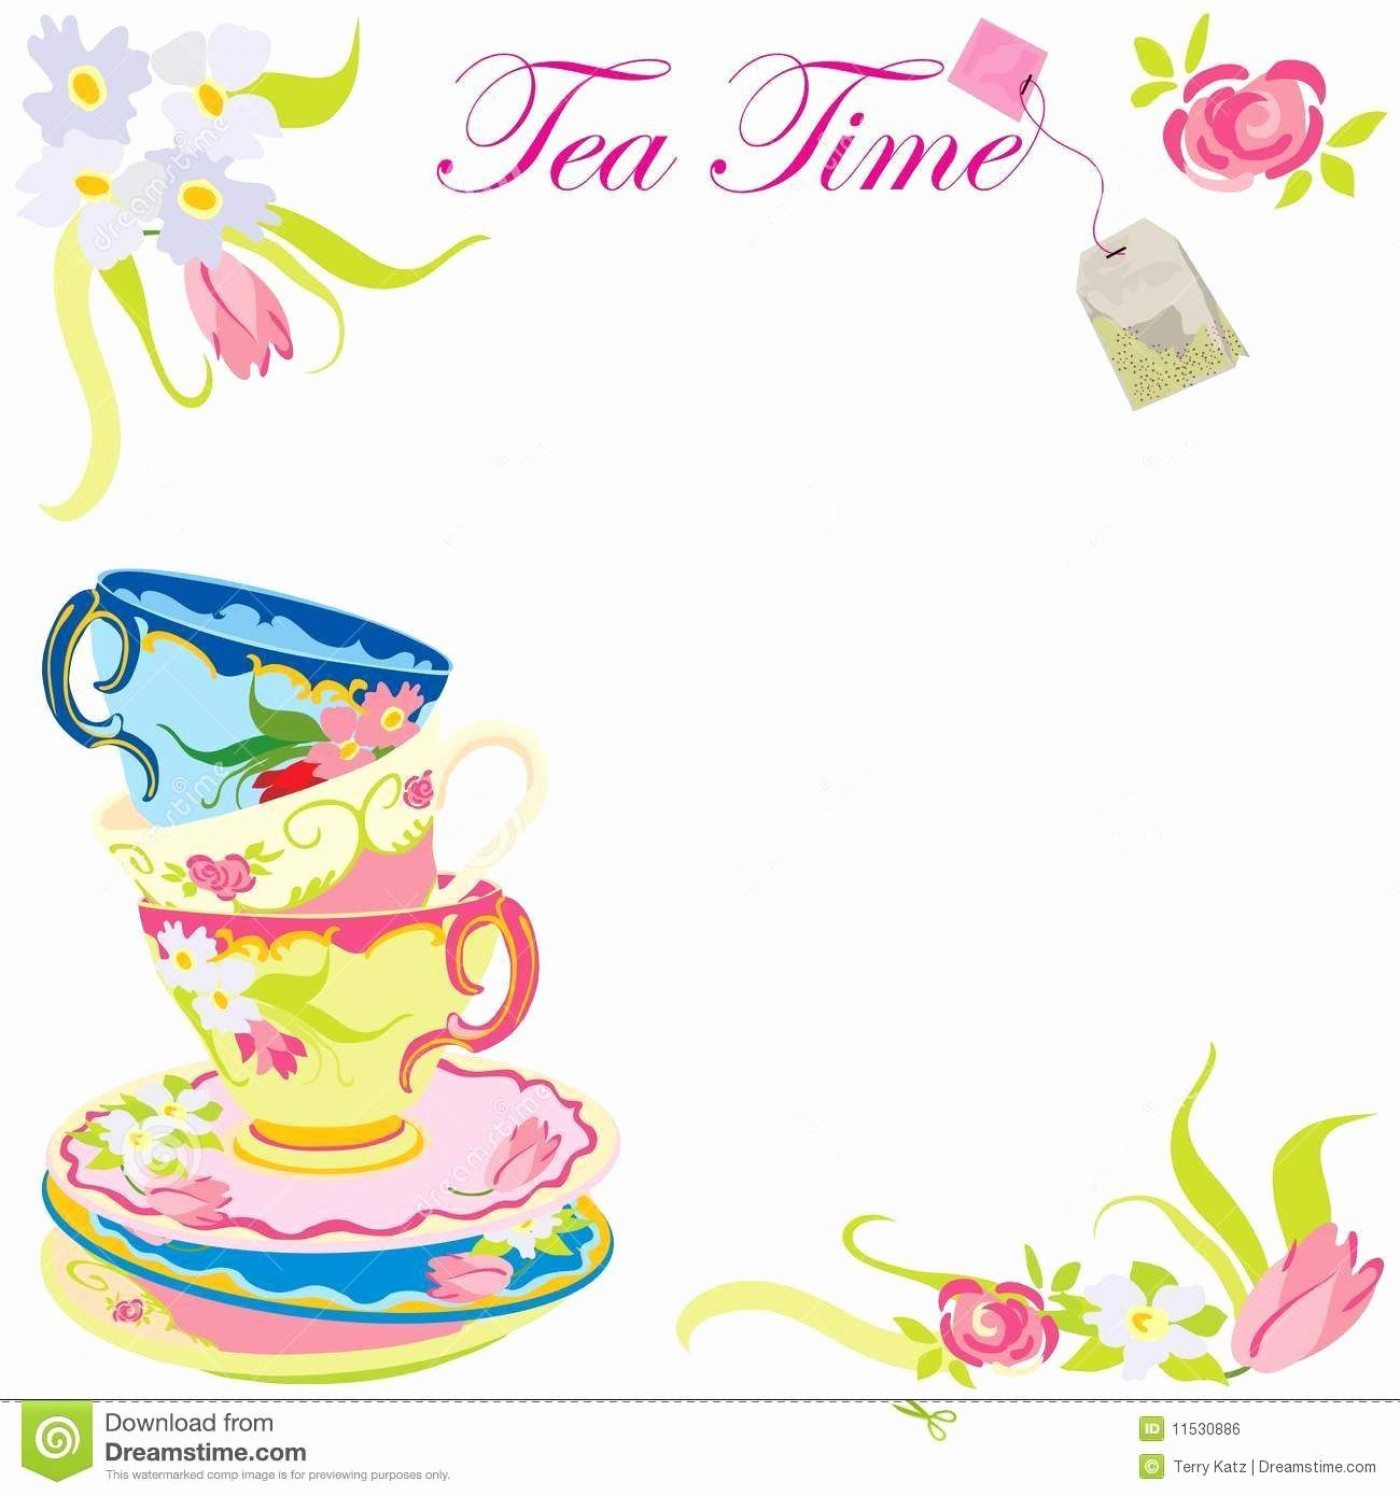 009 Stirring Tea Party Invitation Template Sample  Card Victorian Wording For Bridal Shower1400